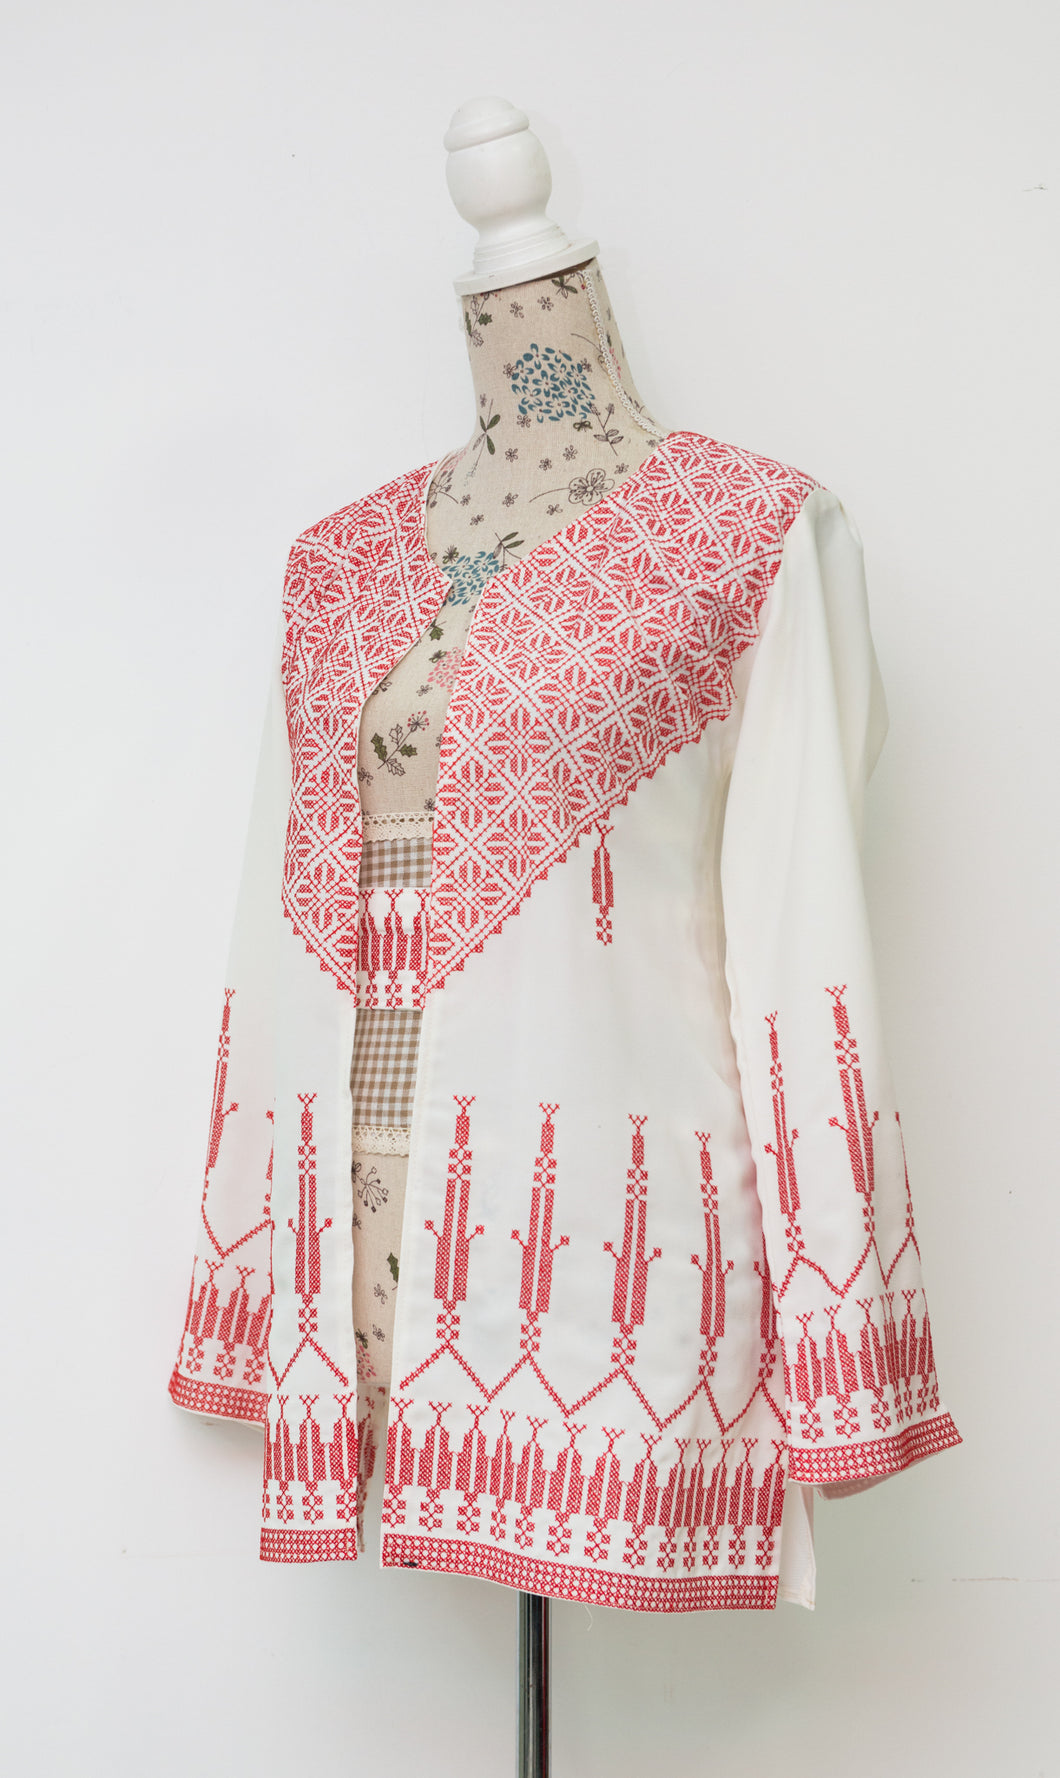 White jacket with red embroidery and belt - Falastini Brand